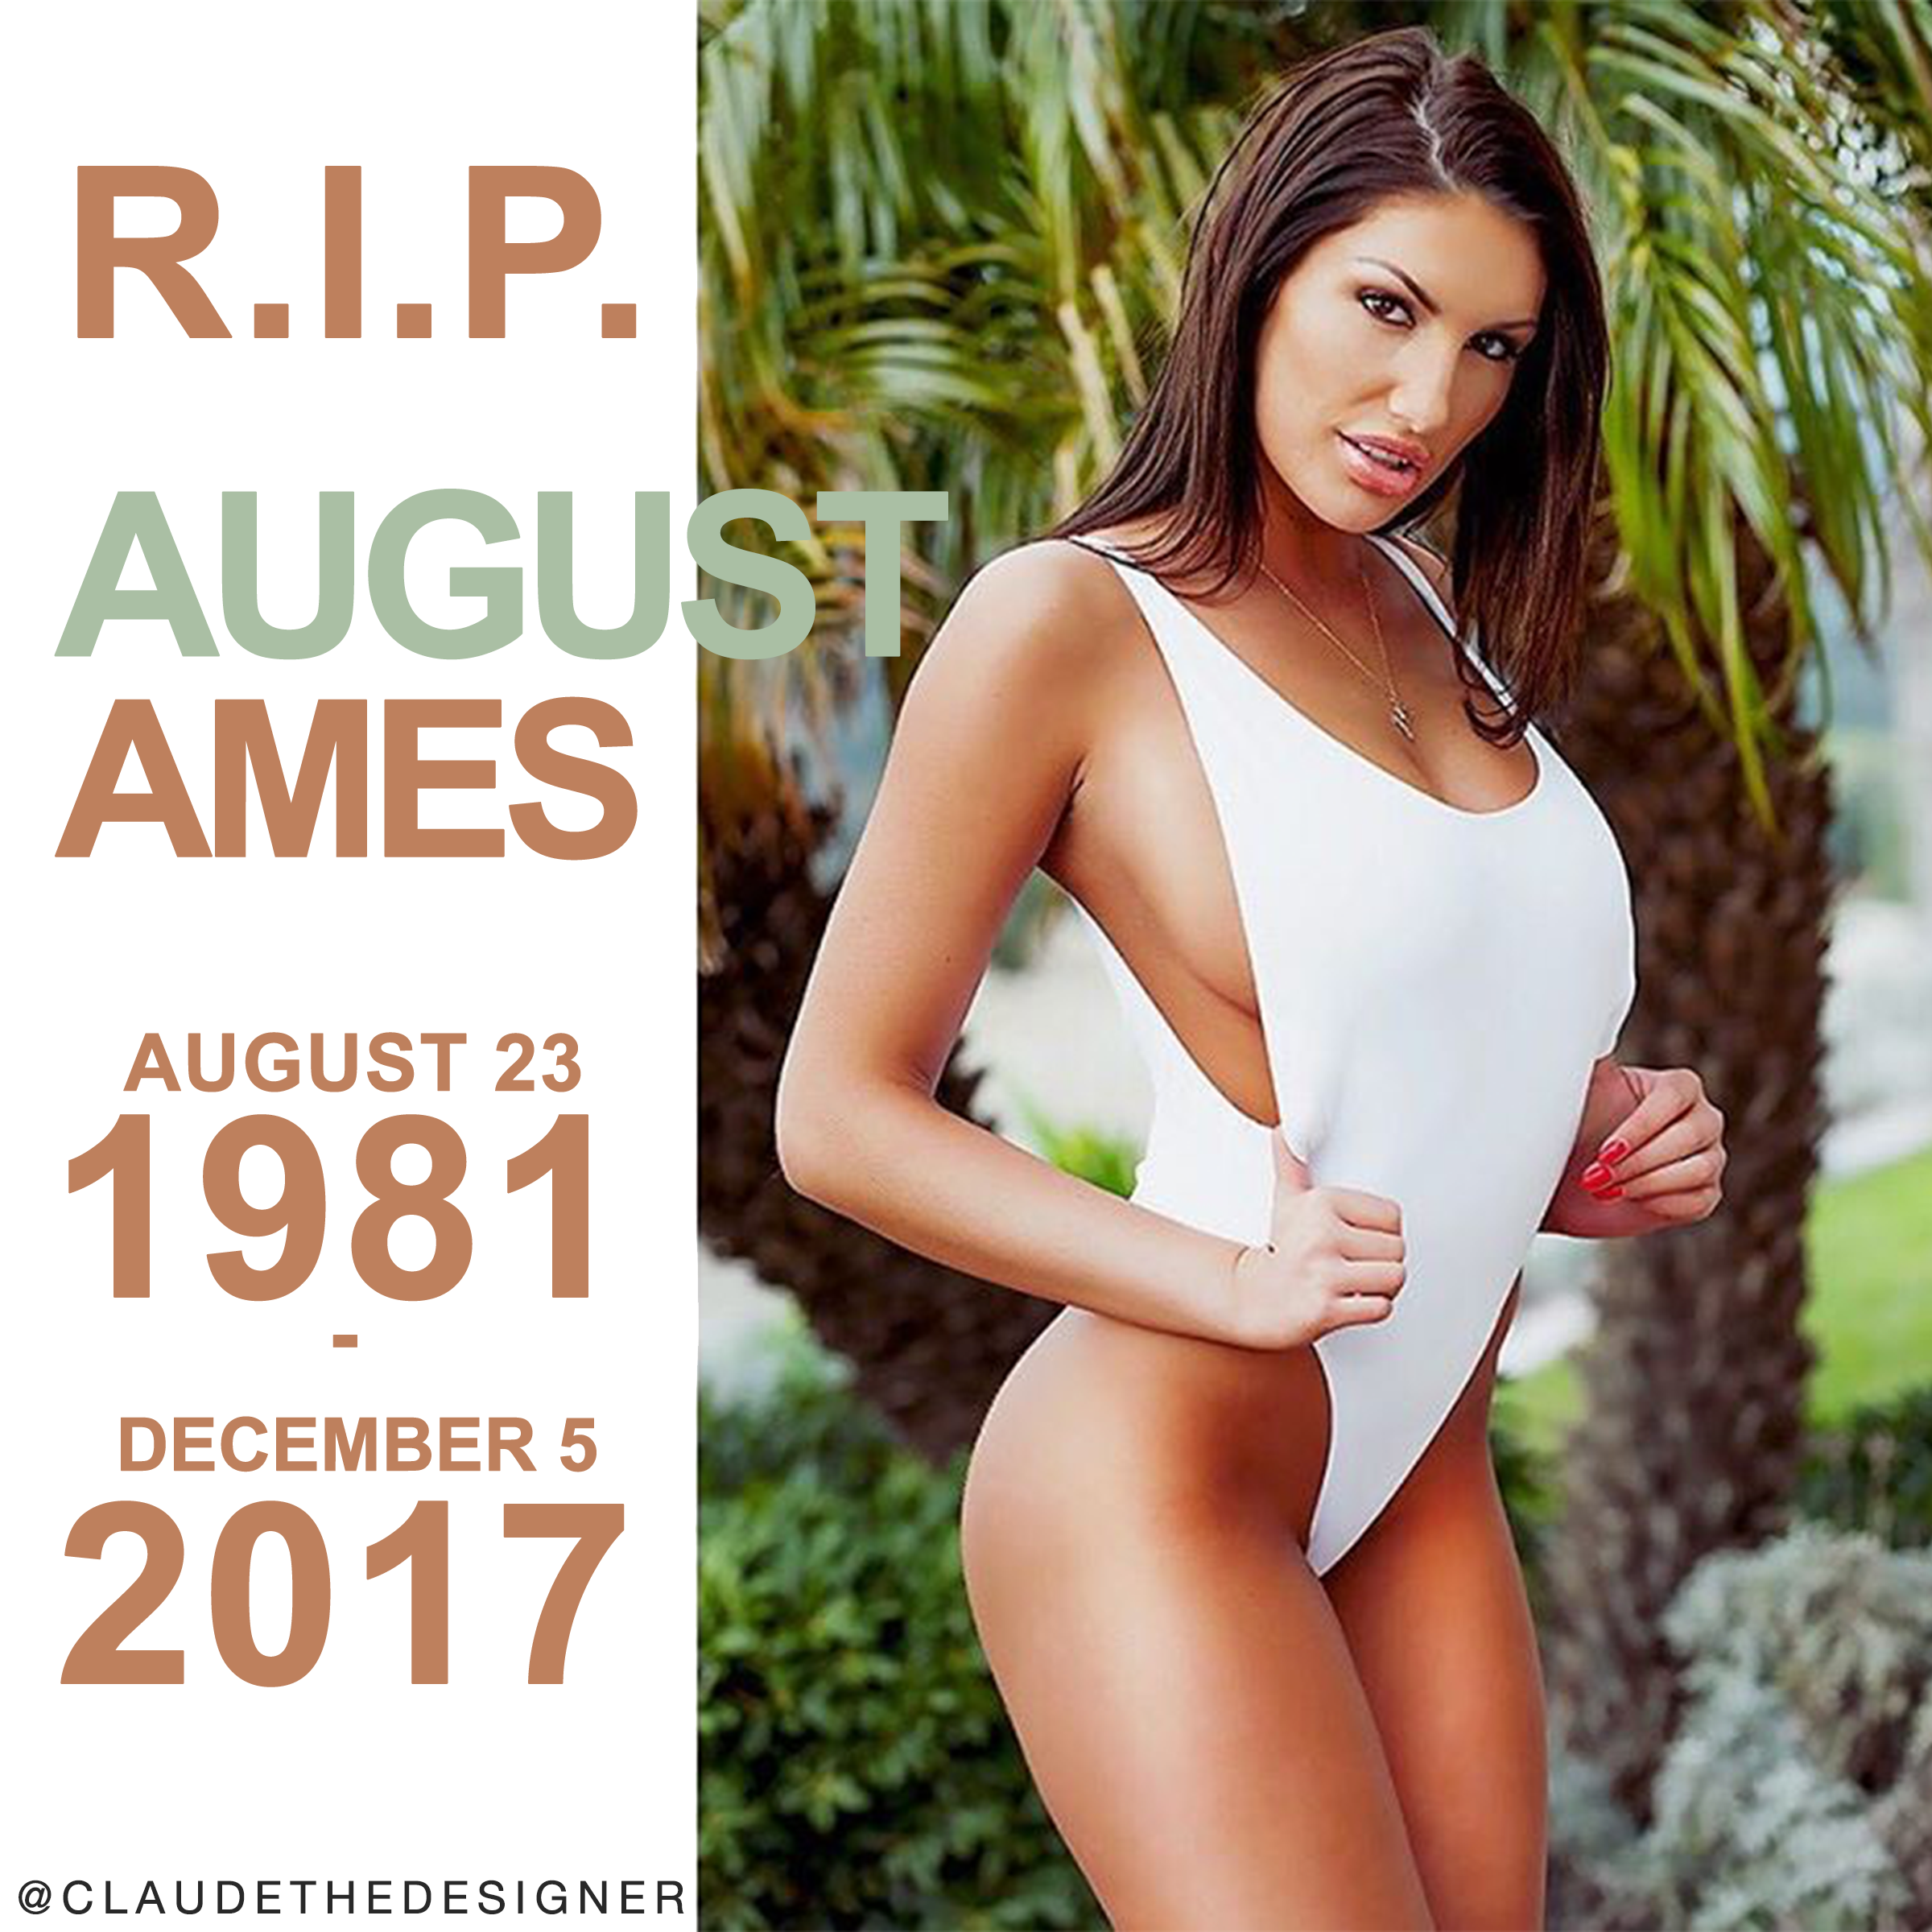 August ames (rip)